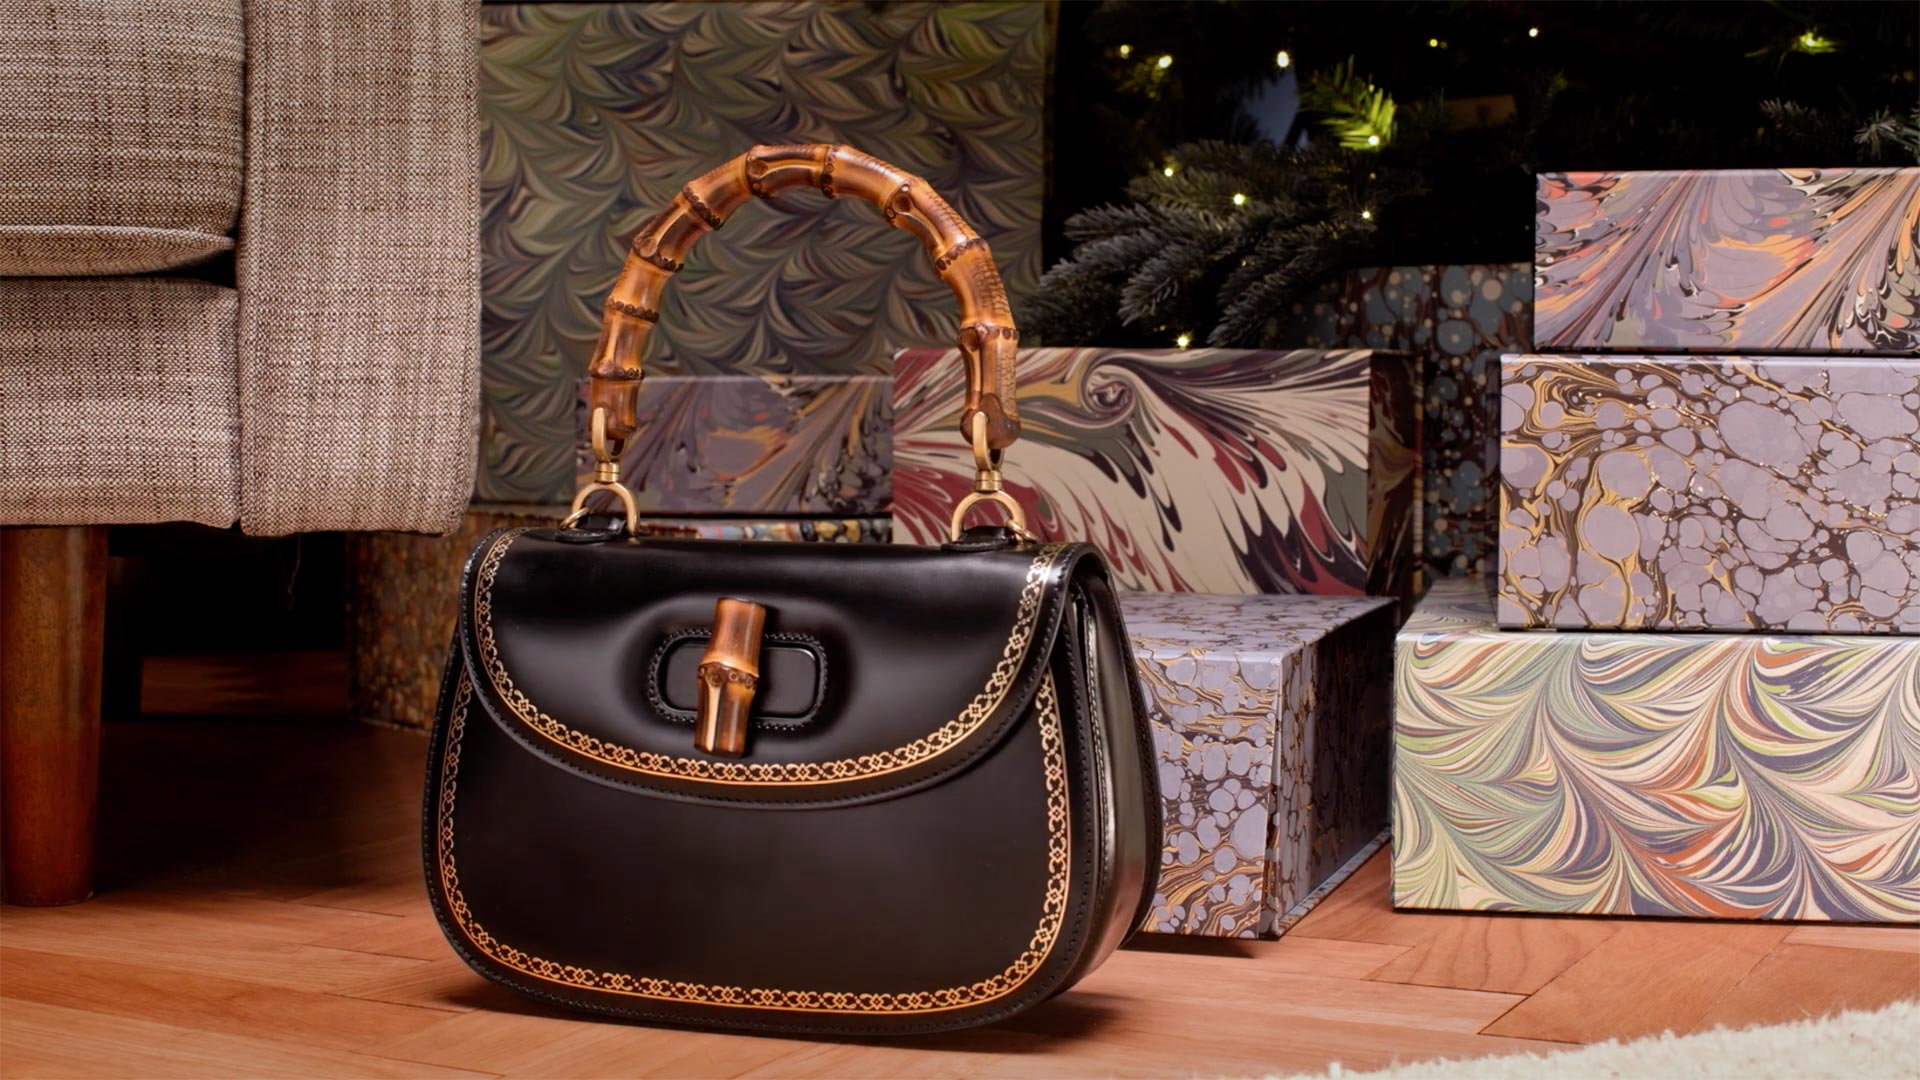 Gucci handbag pops out of a Christmas box for Matchesfashion